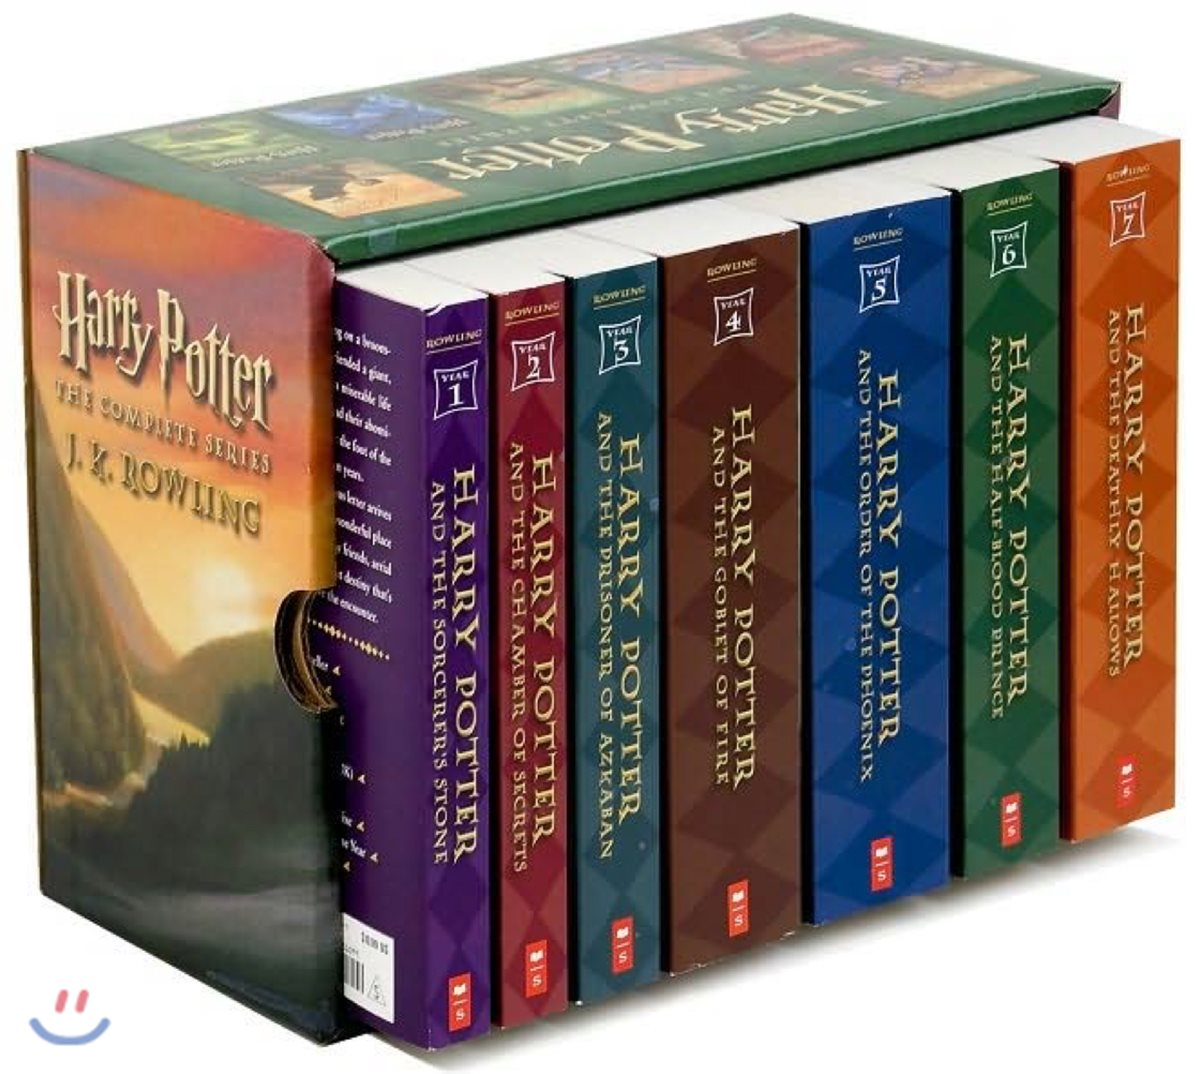 Harry Potter Paperback Boxed Set Book 1-7 : 미국판